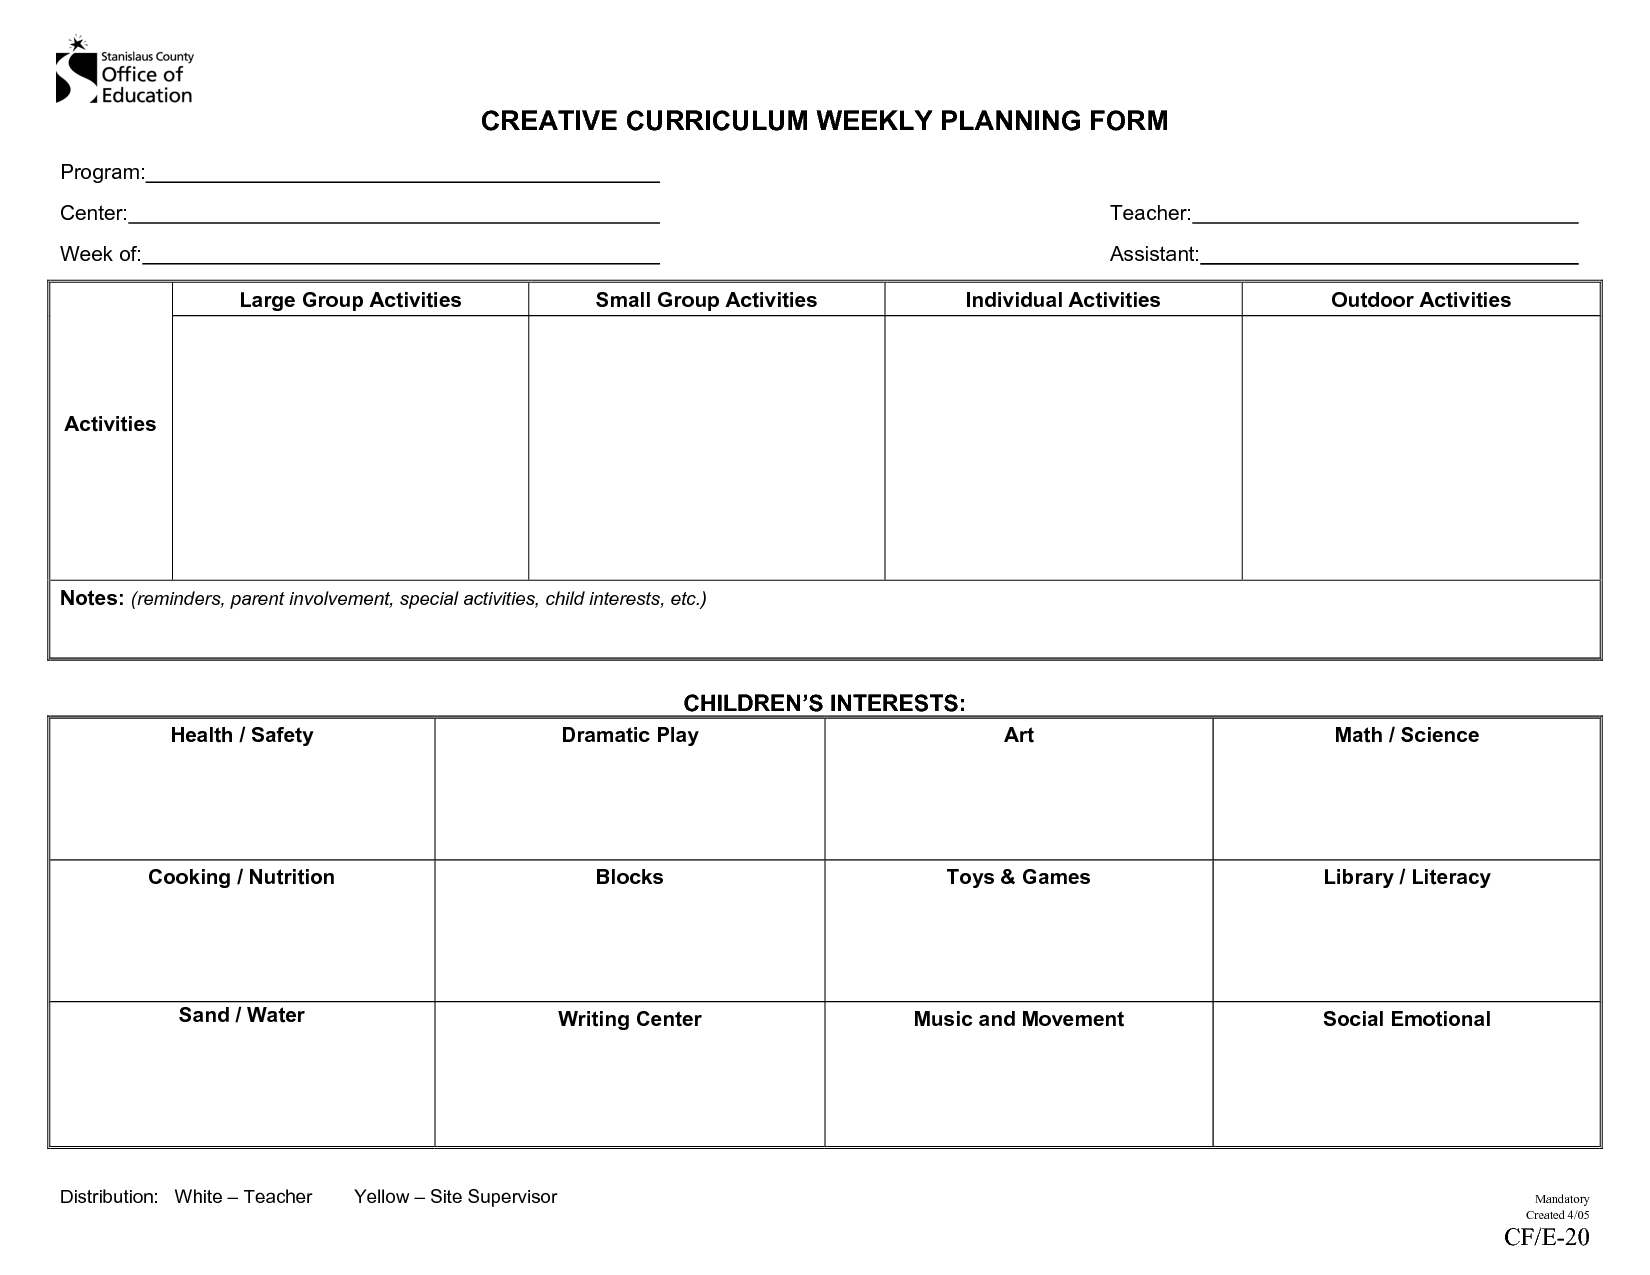 Creative Curriculum Lesson Plan Template - Bing Images | Creative ...